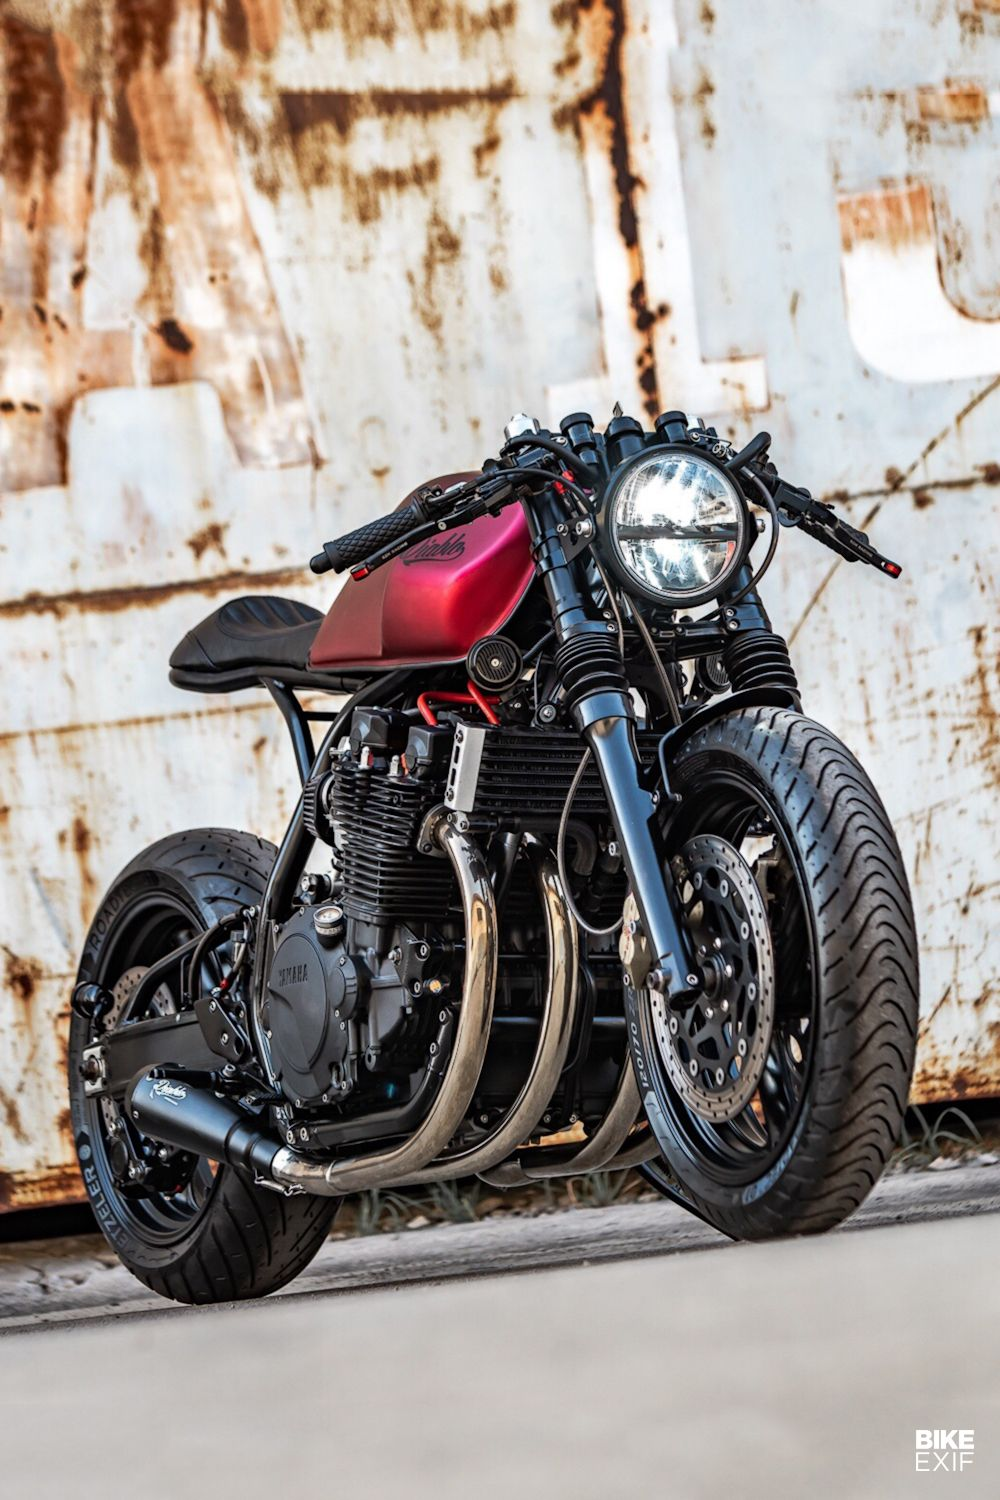 Heavy Hitter K Speed Scales Up With An Xjr 1300 Café Racer Cafe Racer Cafe Racer Motorcycle Vintage Cafe Racer